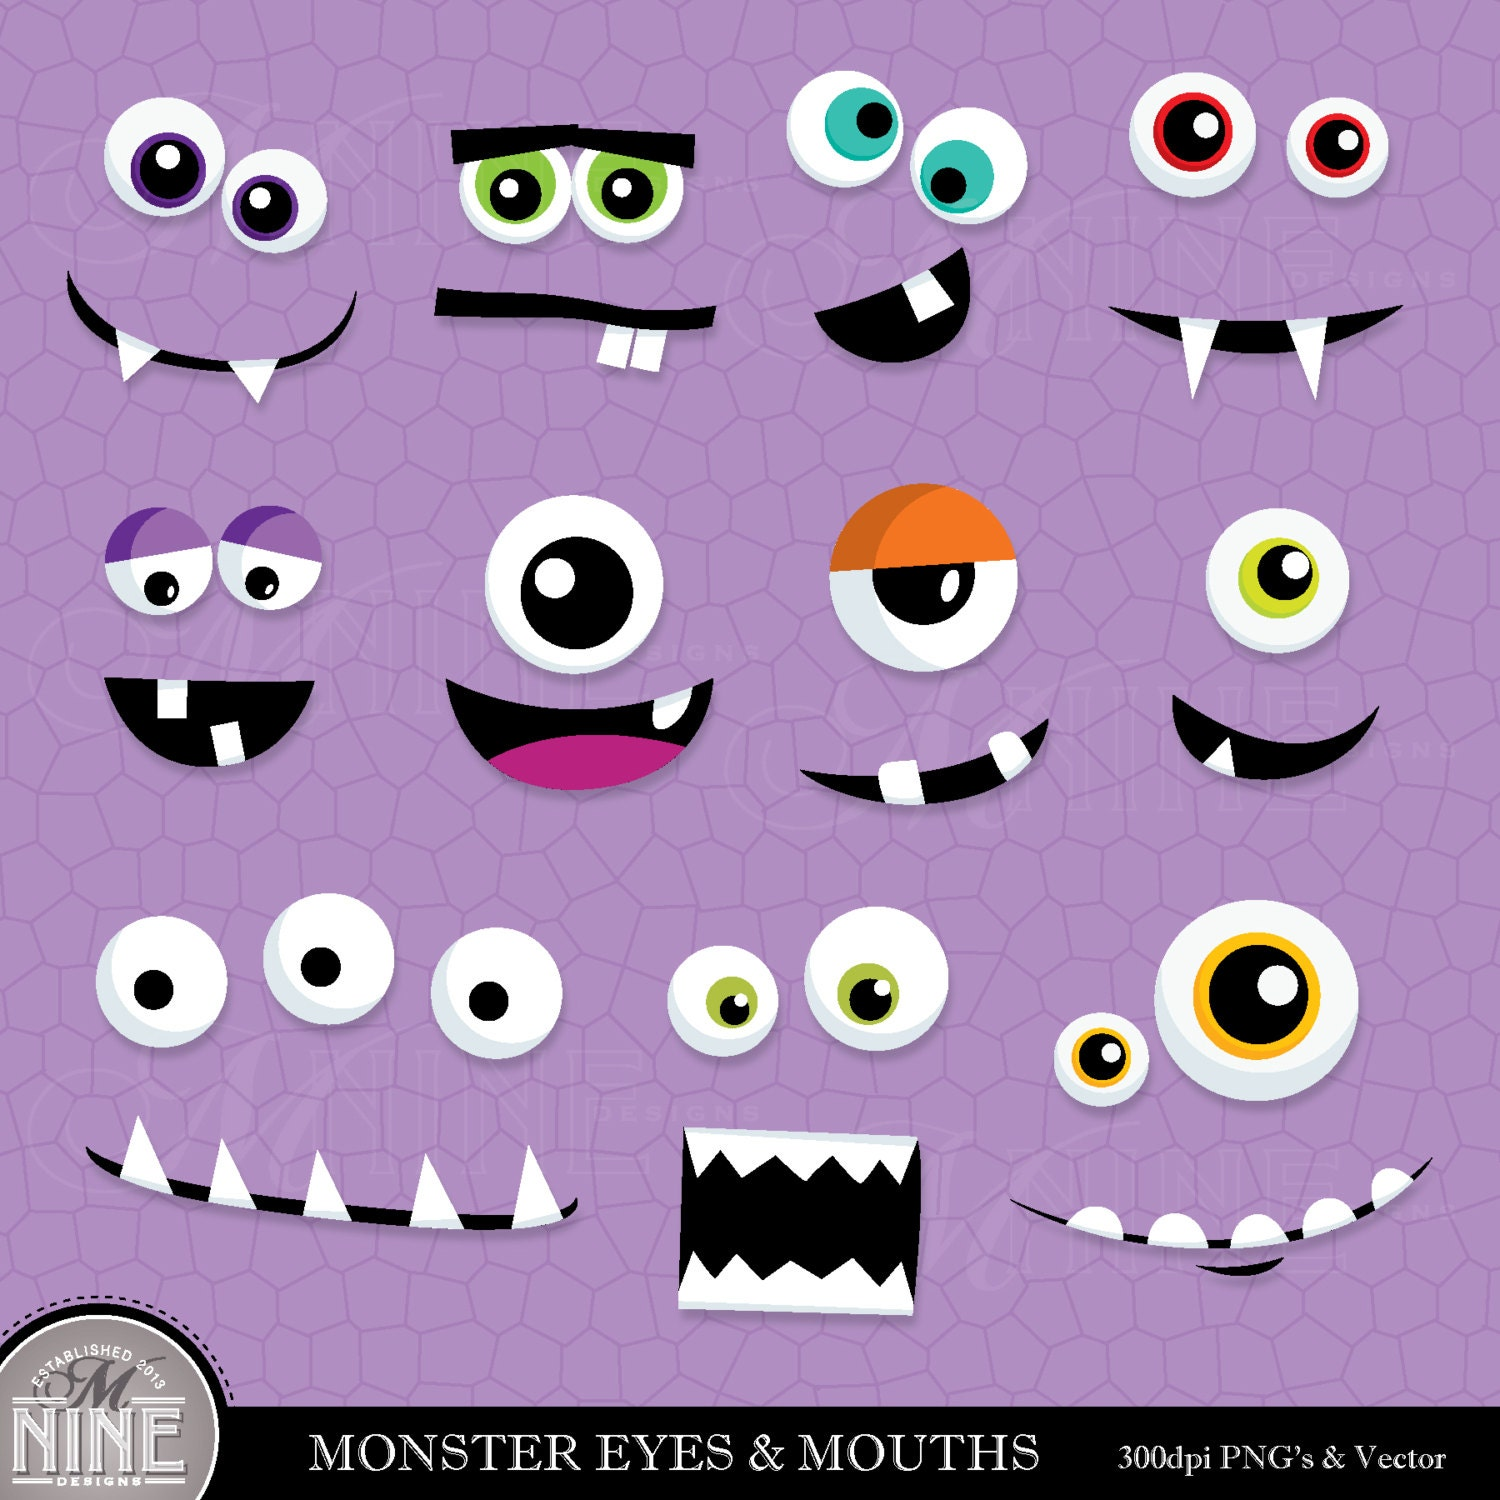 Fabulous image within printable monster faces